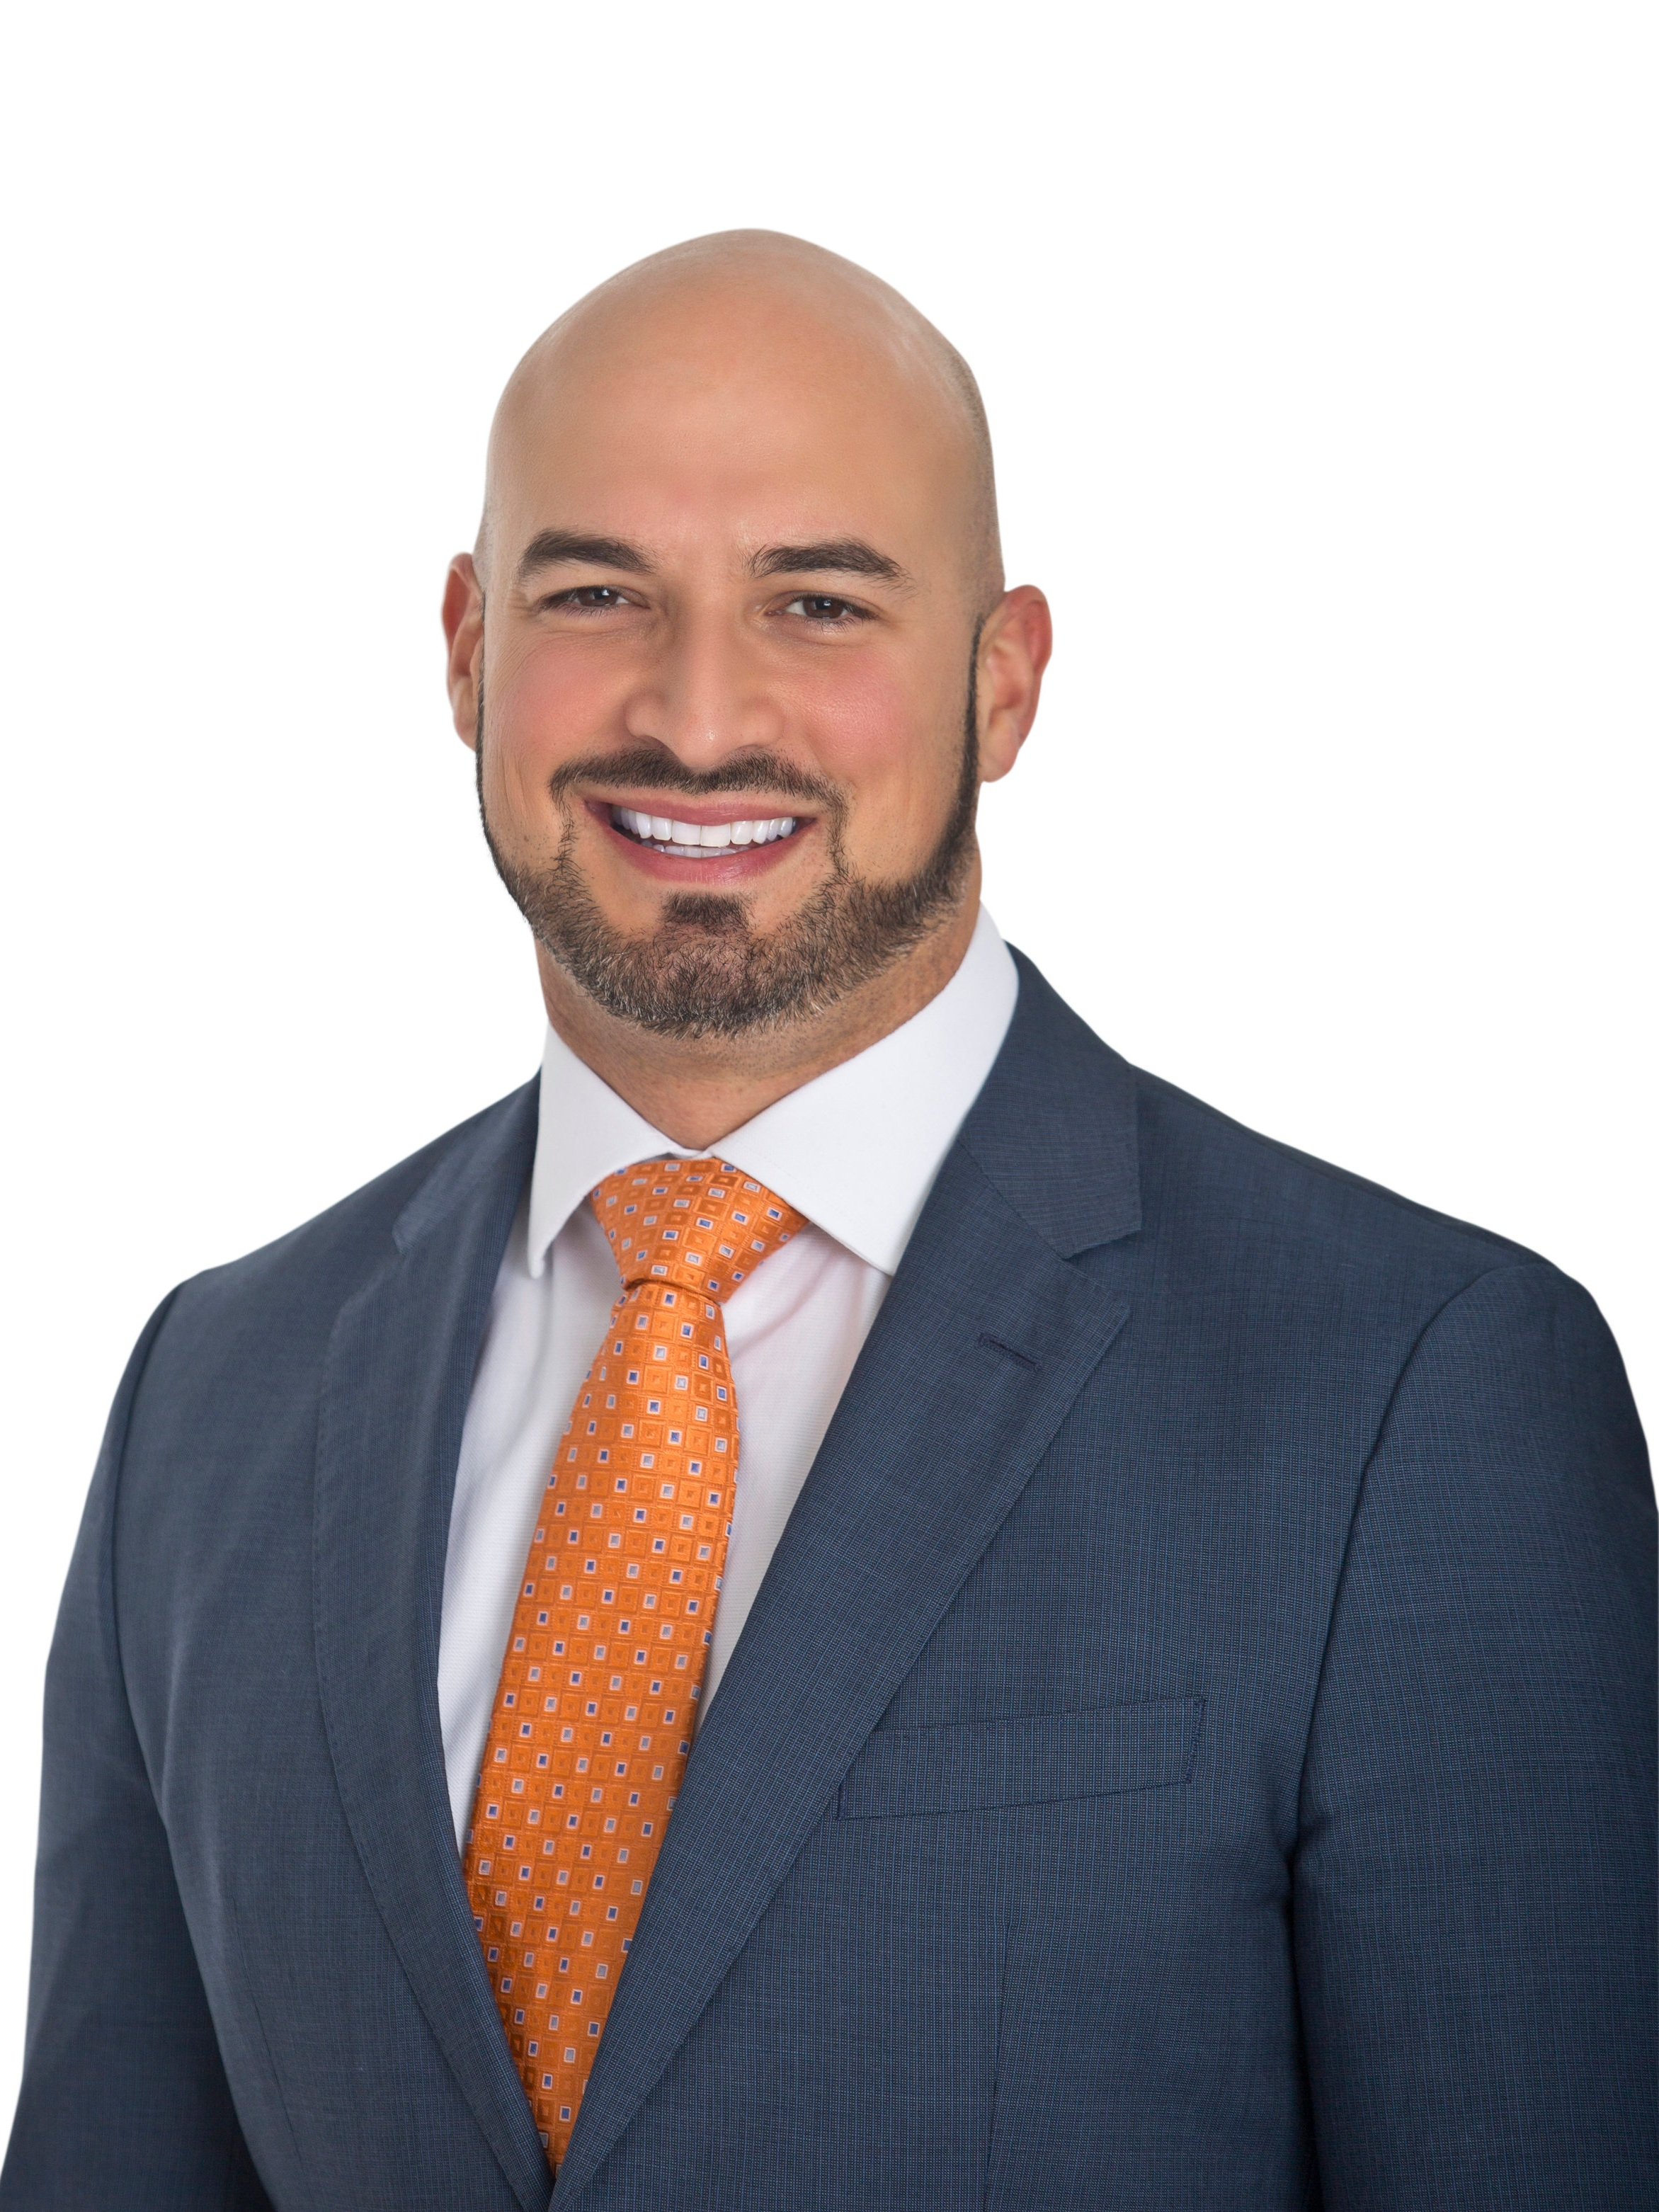 Matthew Giulianelli, DMD, FAGD, FICOI - Dr. Matt Giulianelli received his dental degree at the world-renowned Tufts School of Dental Medicine. He went on to complete his residency at Boston Medical Center where he received advanced training in oral surgery, prosthodontics, and endodontics.